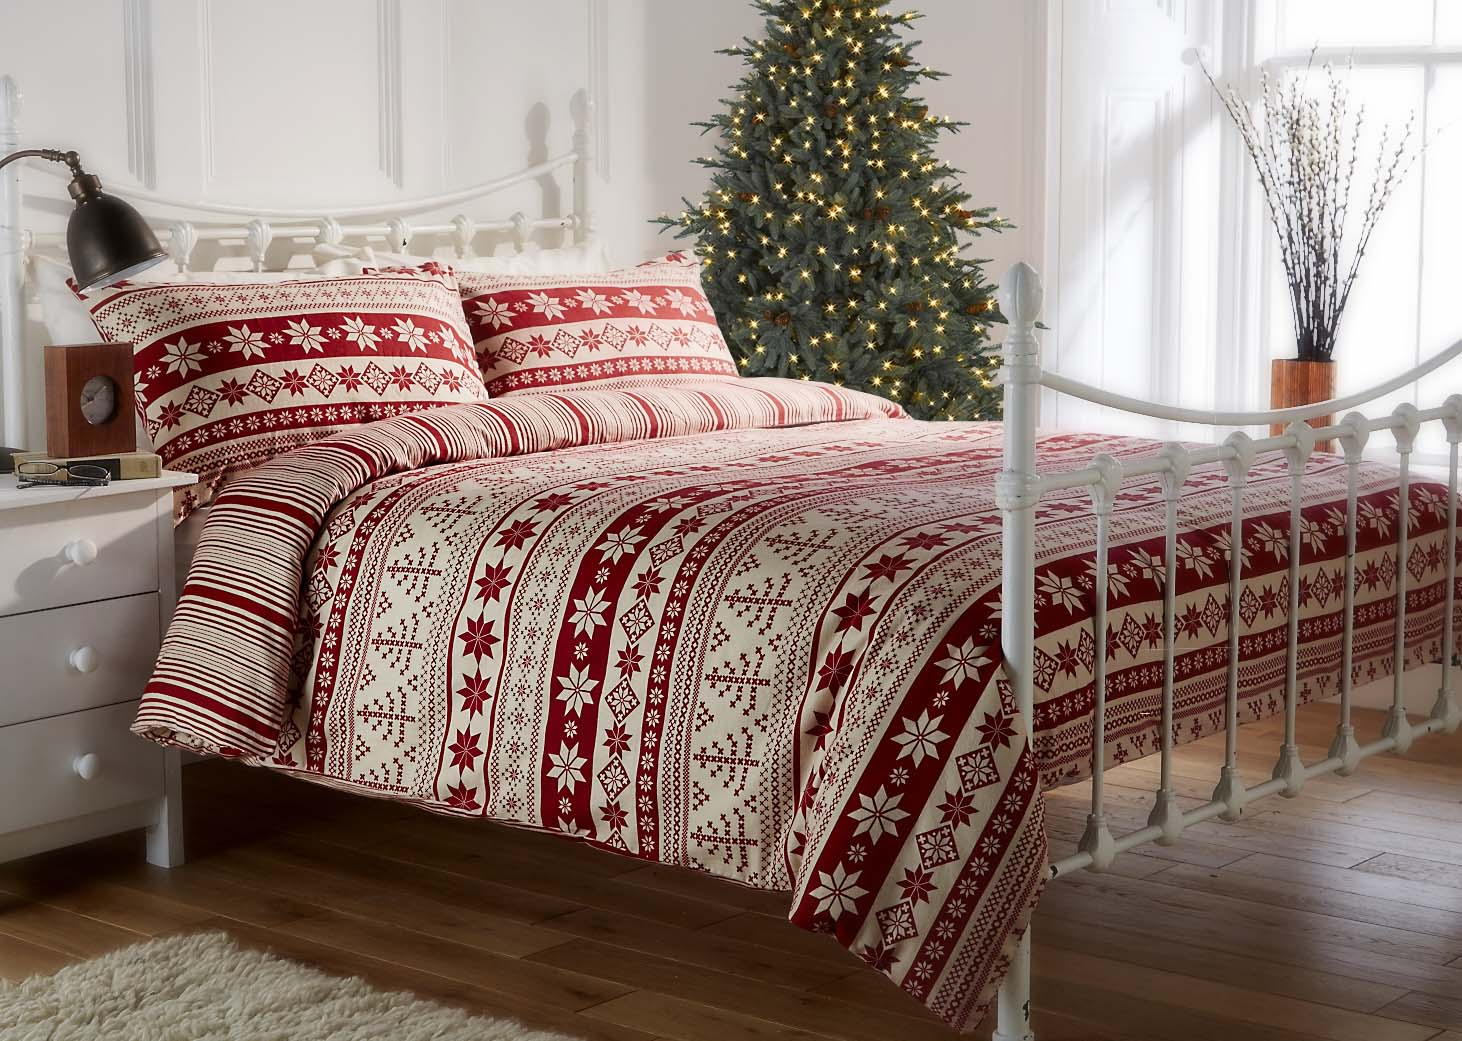 100 Brushed Cotton Flannelette Red Nordic Printed Festive